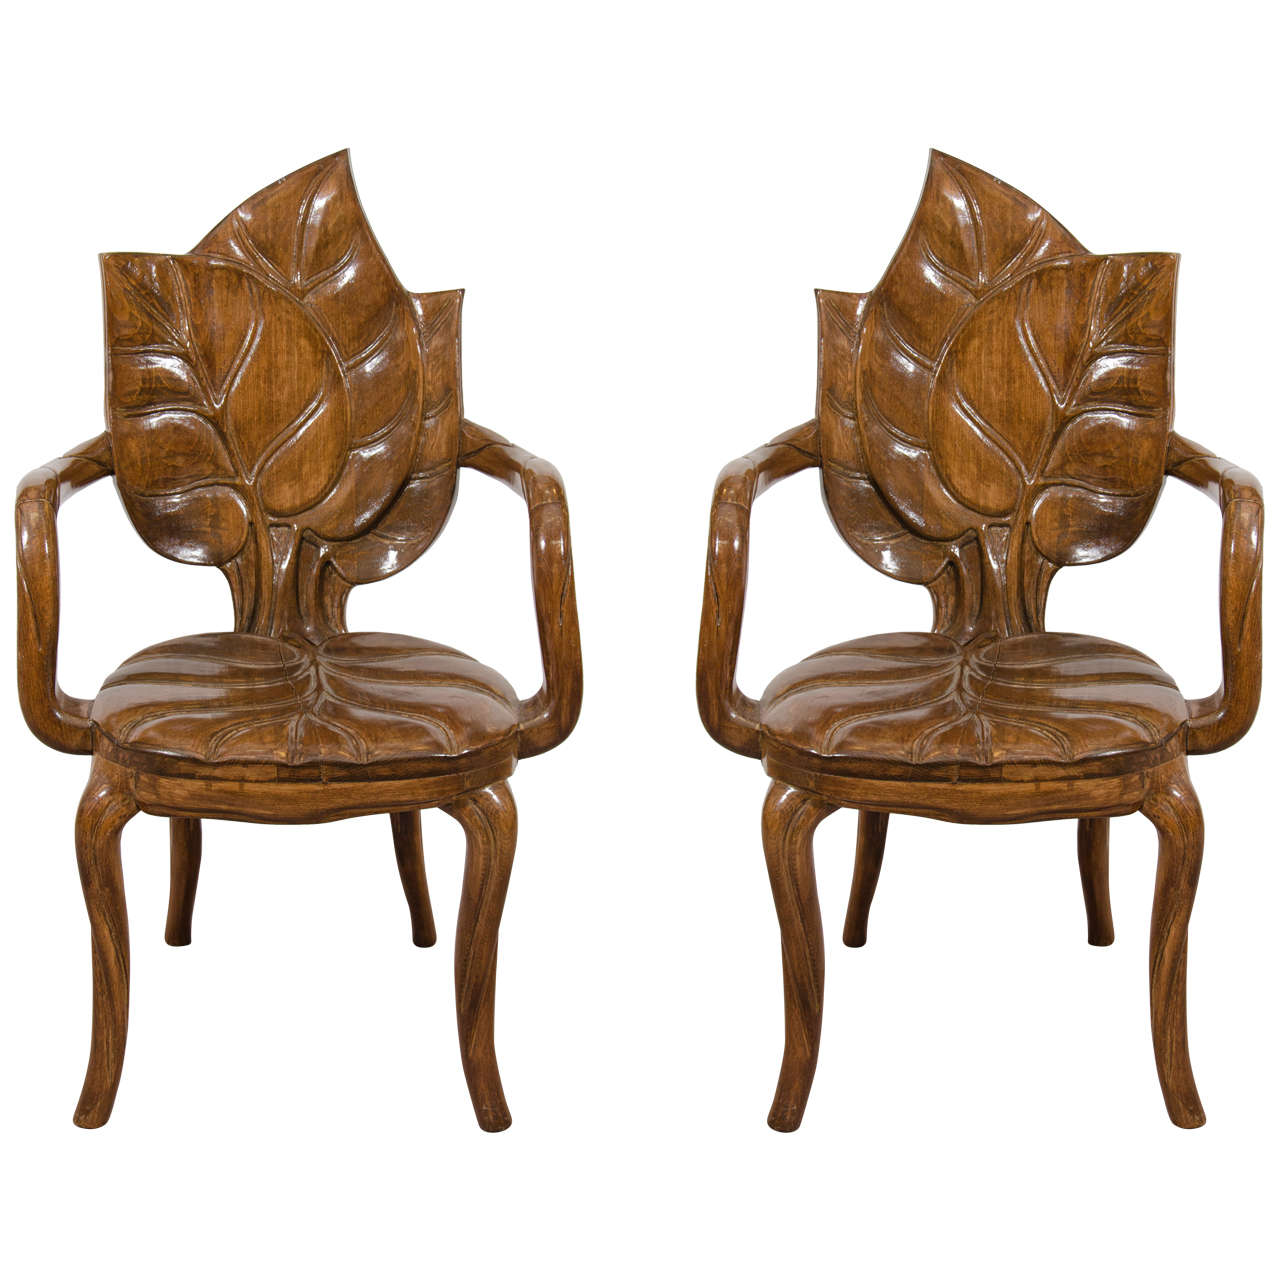 Art nouveau style furniture - Art Nouveau Style Pair Of Sculptural Leaf Motif Armchairs Or Side Chairs 1